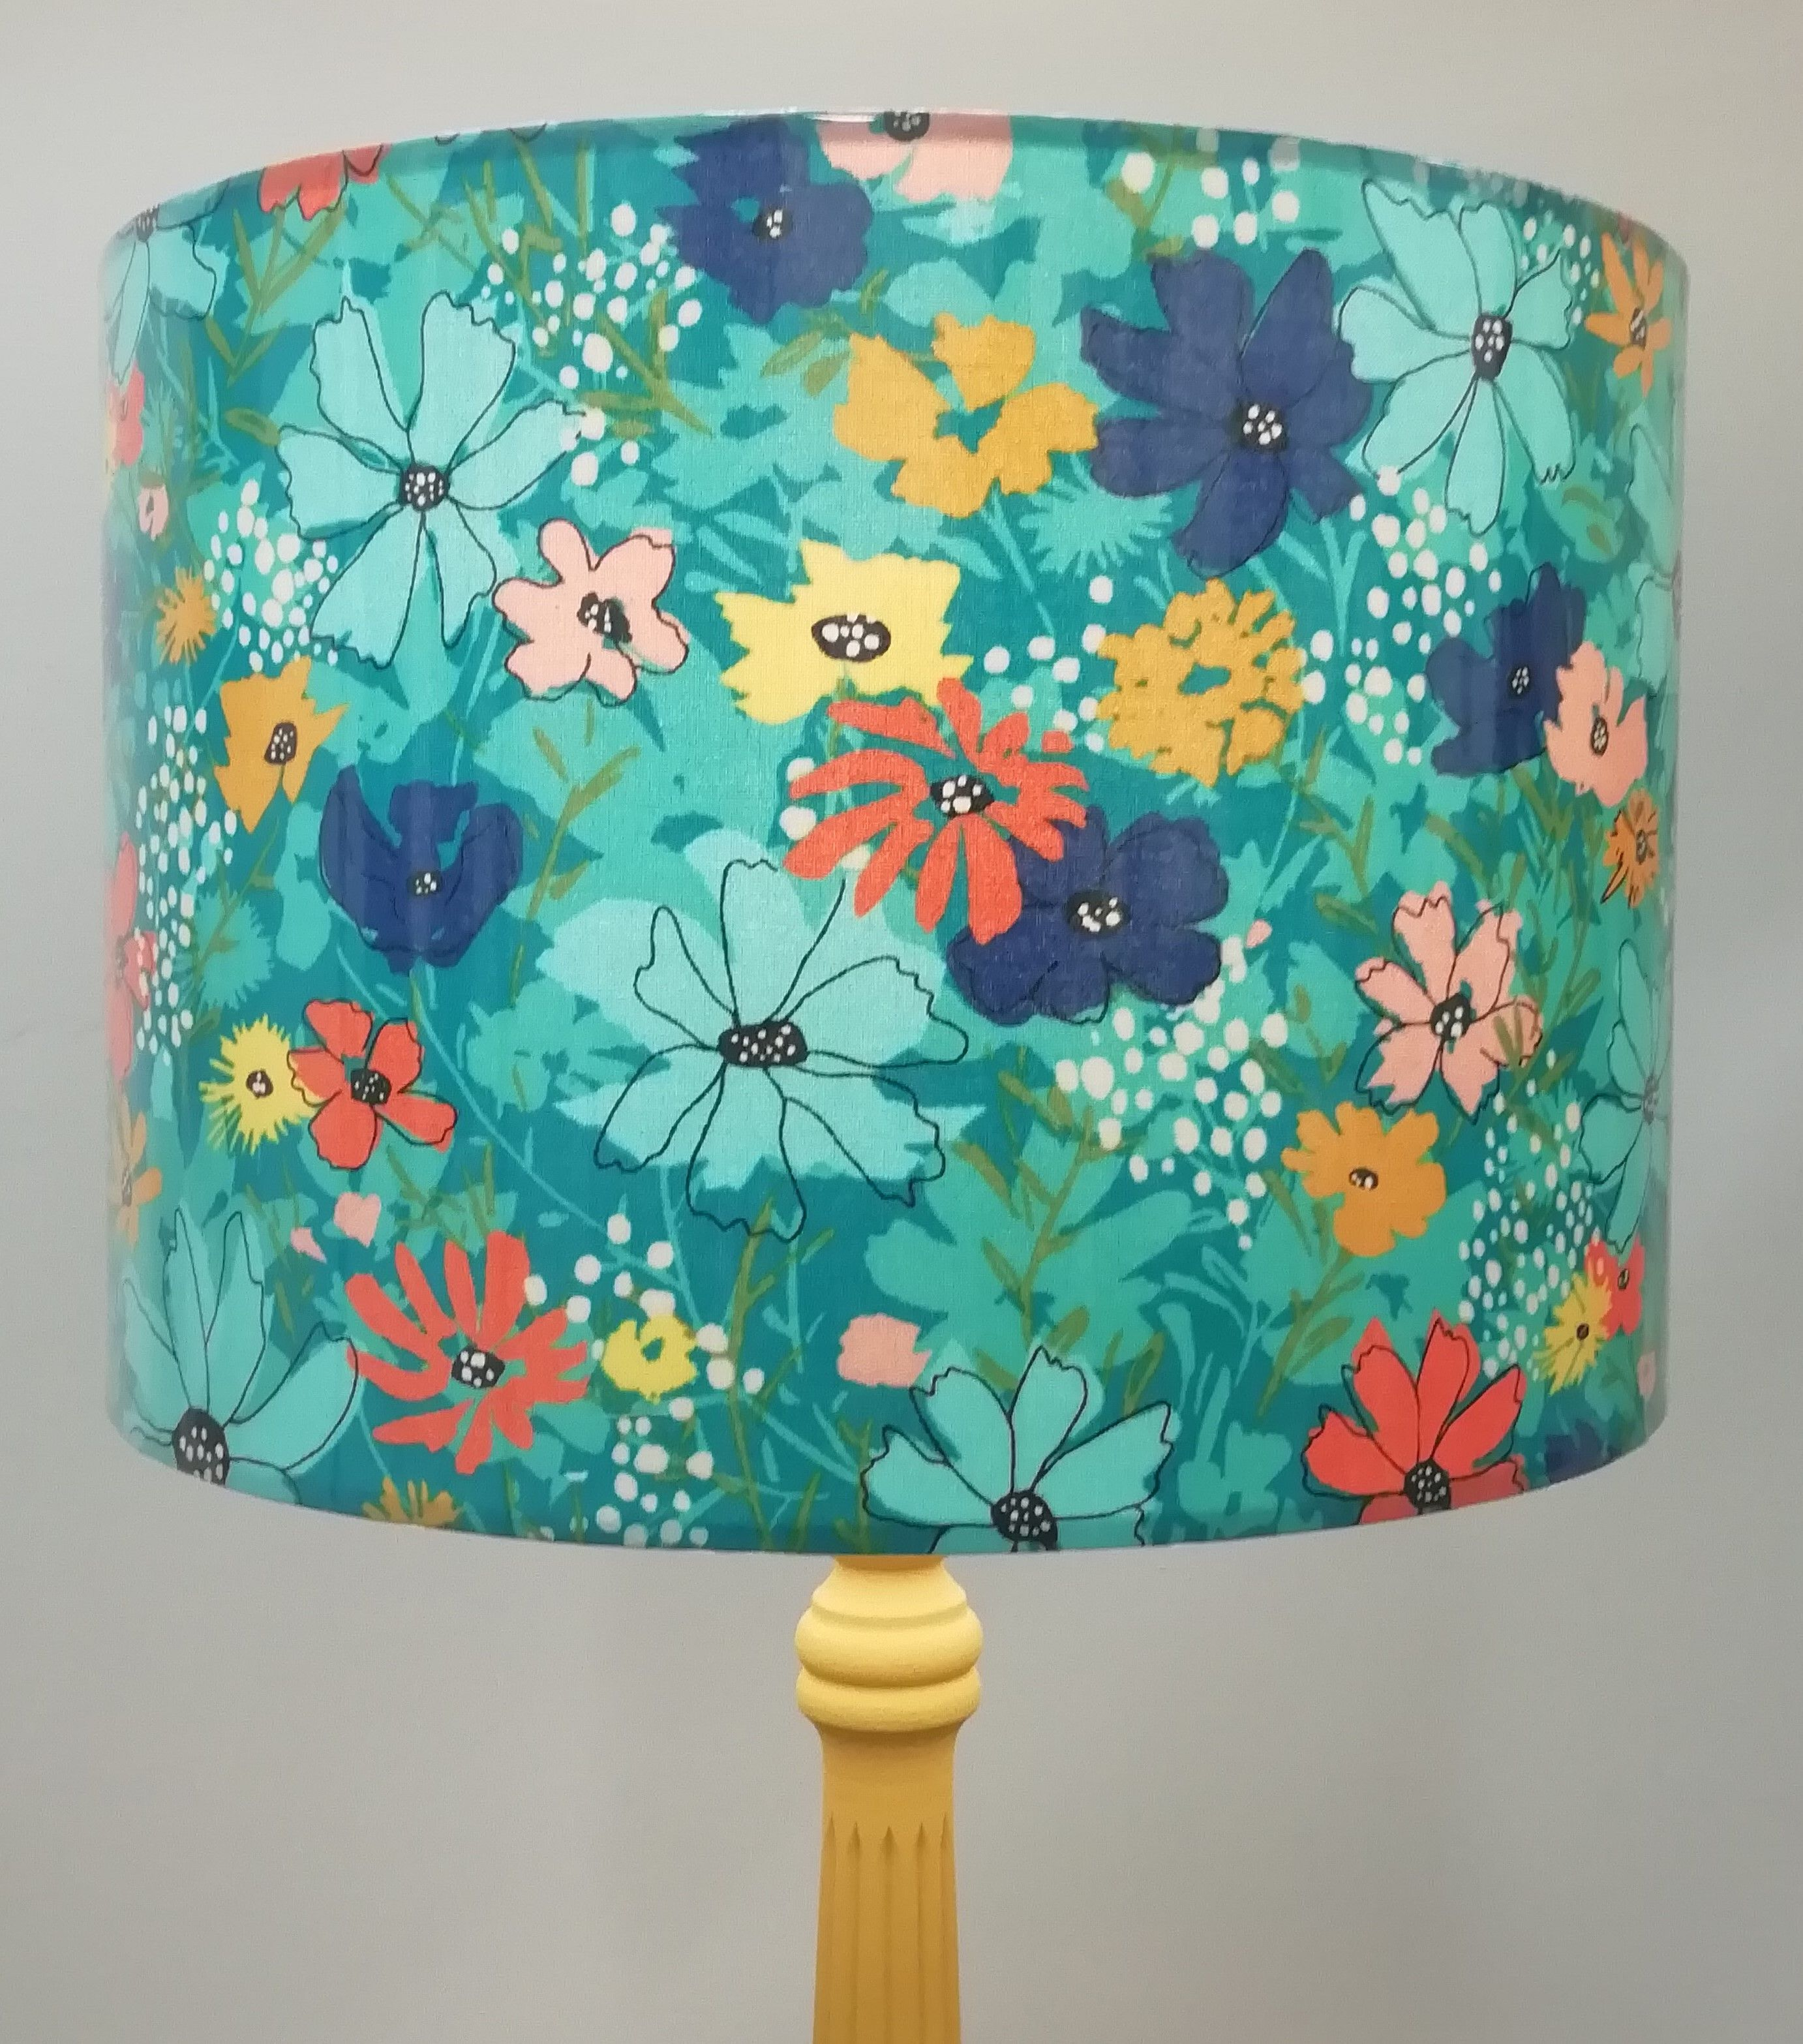 Turquoise Lampshade In 2020 Energy Bulbs Lampshades Modern Lamp Shades